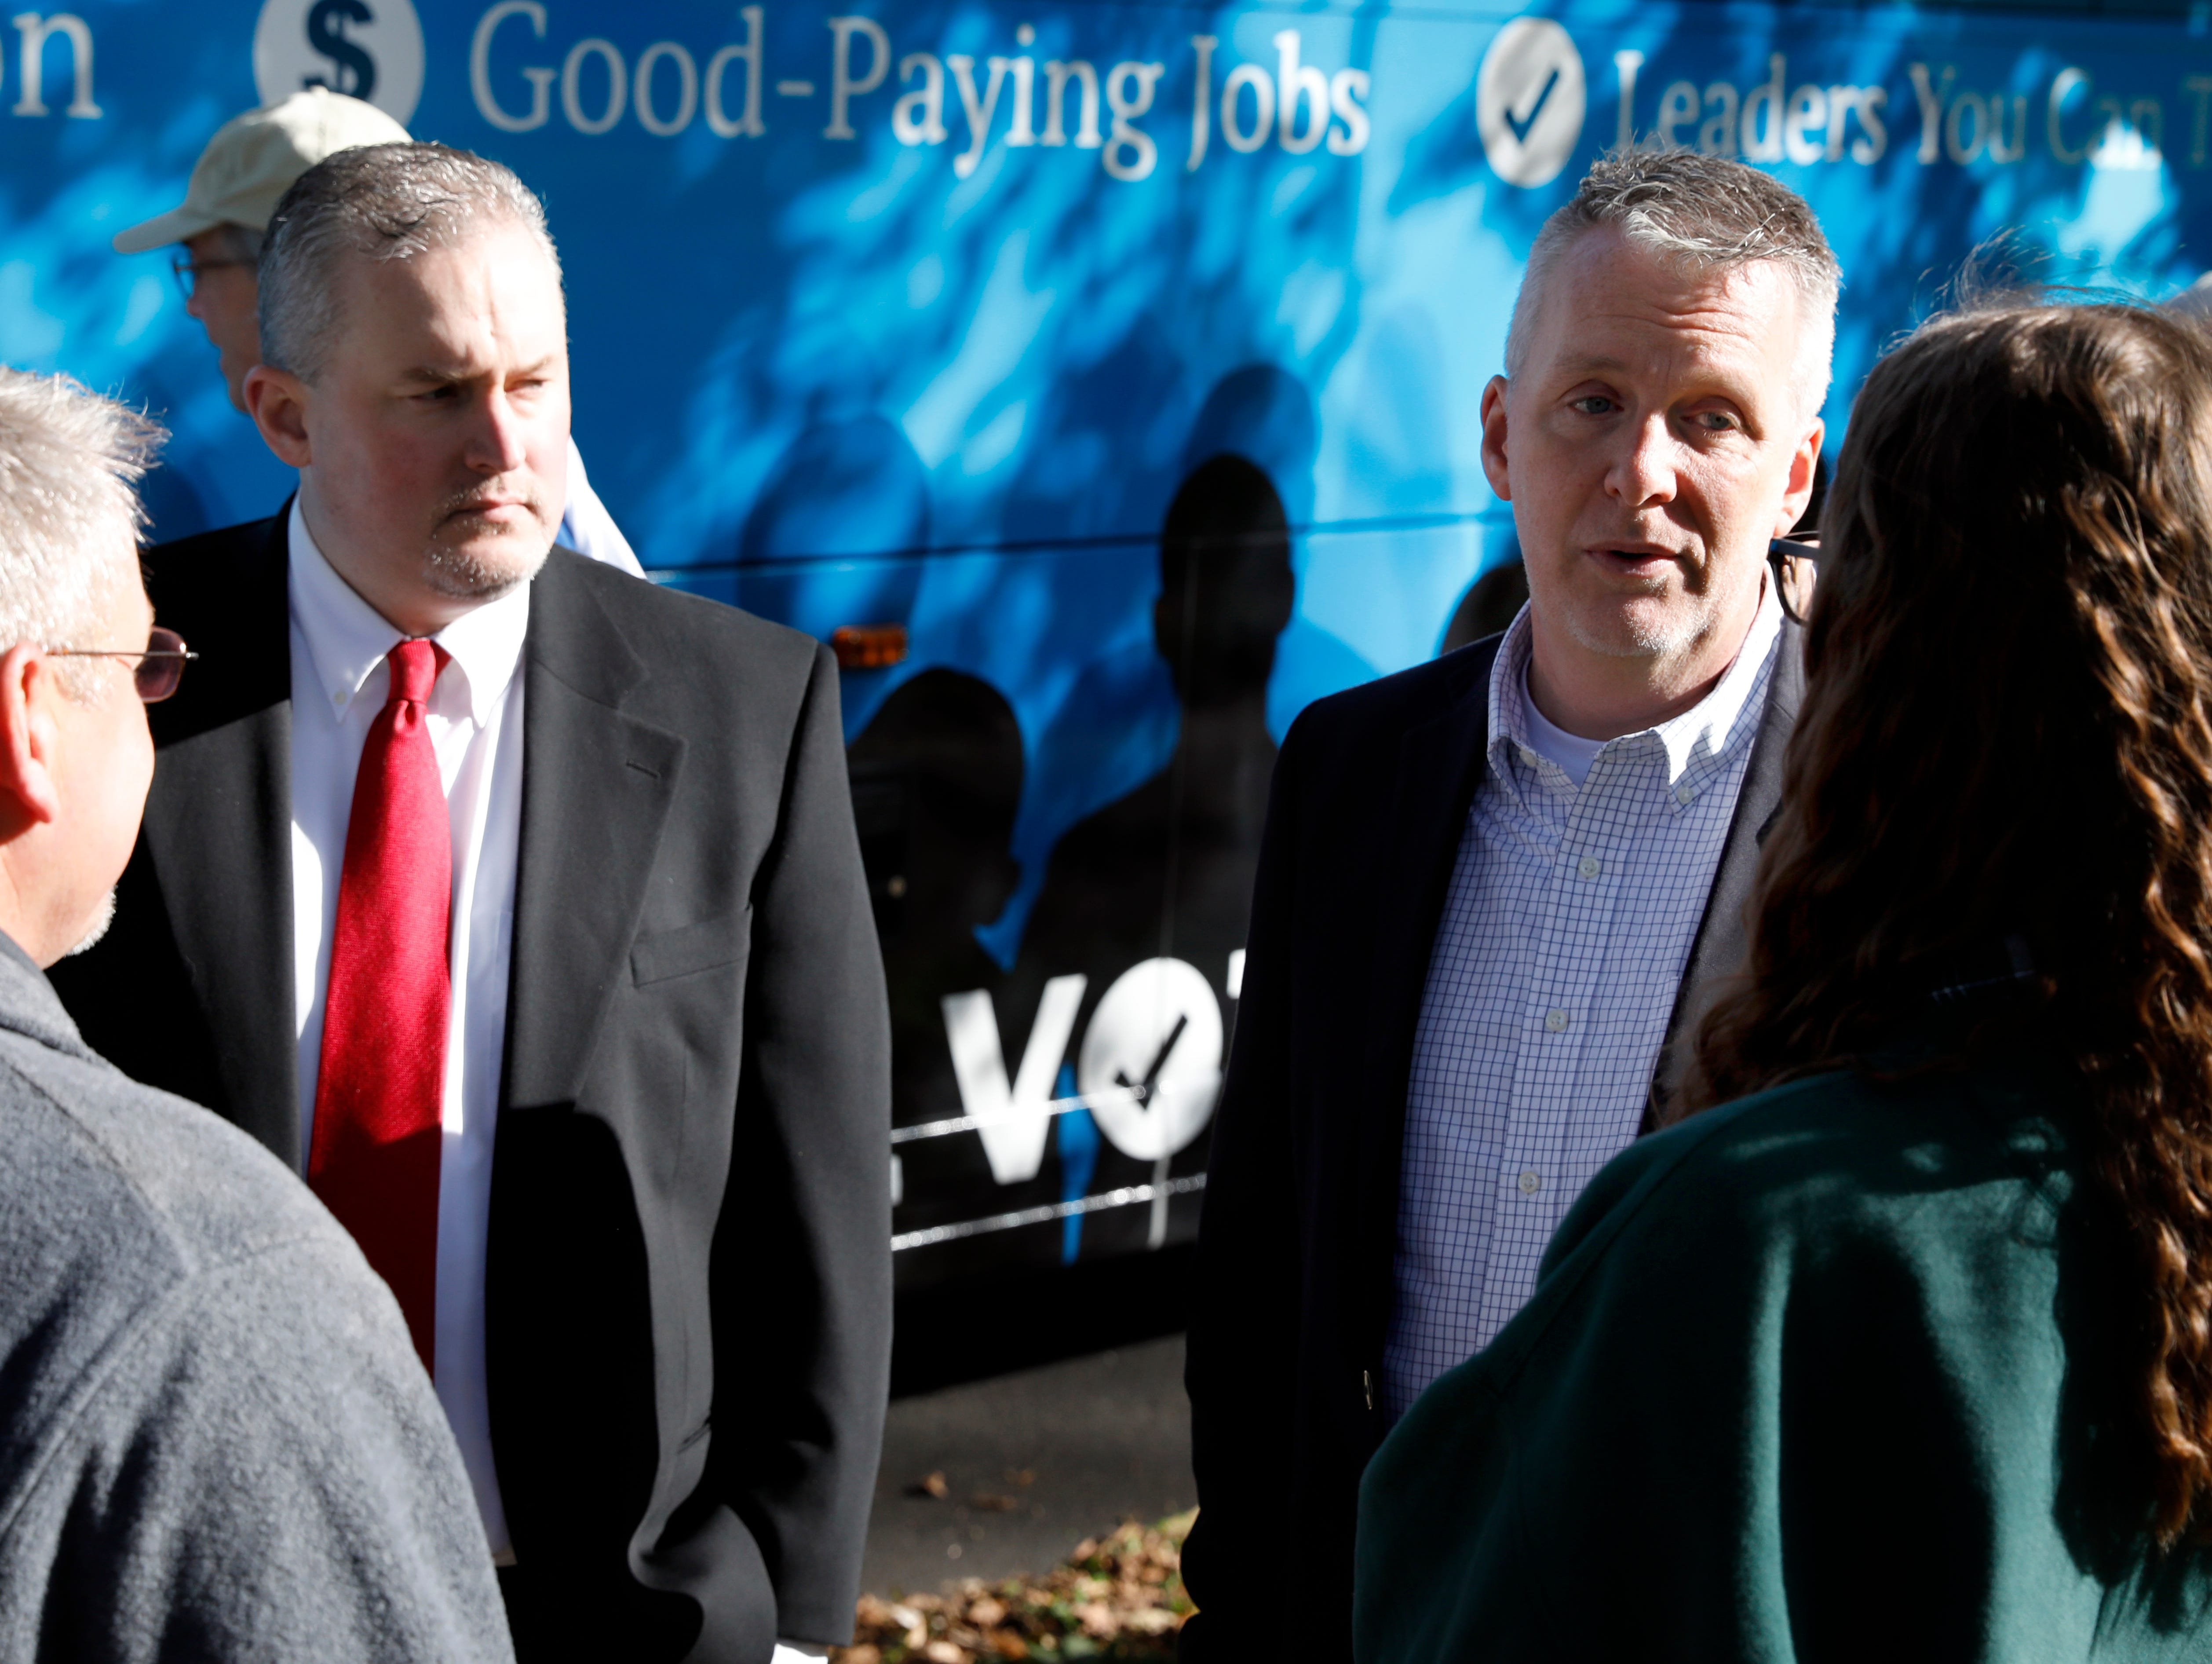 Rick Neal, second from right, and Brett Pransky, second from left, Democratic candidates for the Ohio 15th Congressional district and the Ohio House 77th district speak to Chris Zacker, left, and Haley Zacker Monday morning, Oct. 22, 2018, at Firehouse Park in Lancaster. Neal, Pransky and 78th Ohio House District candidate Amber Daniels were holding a campaign event at the park.